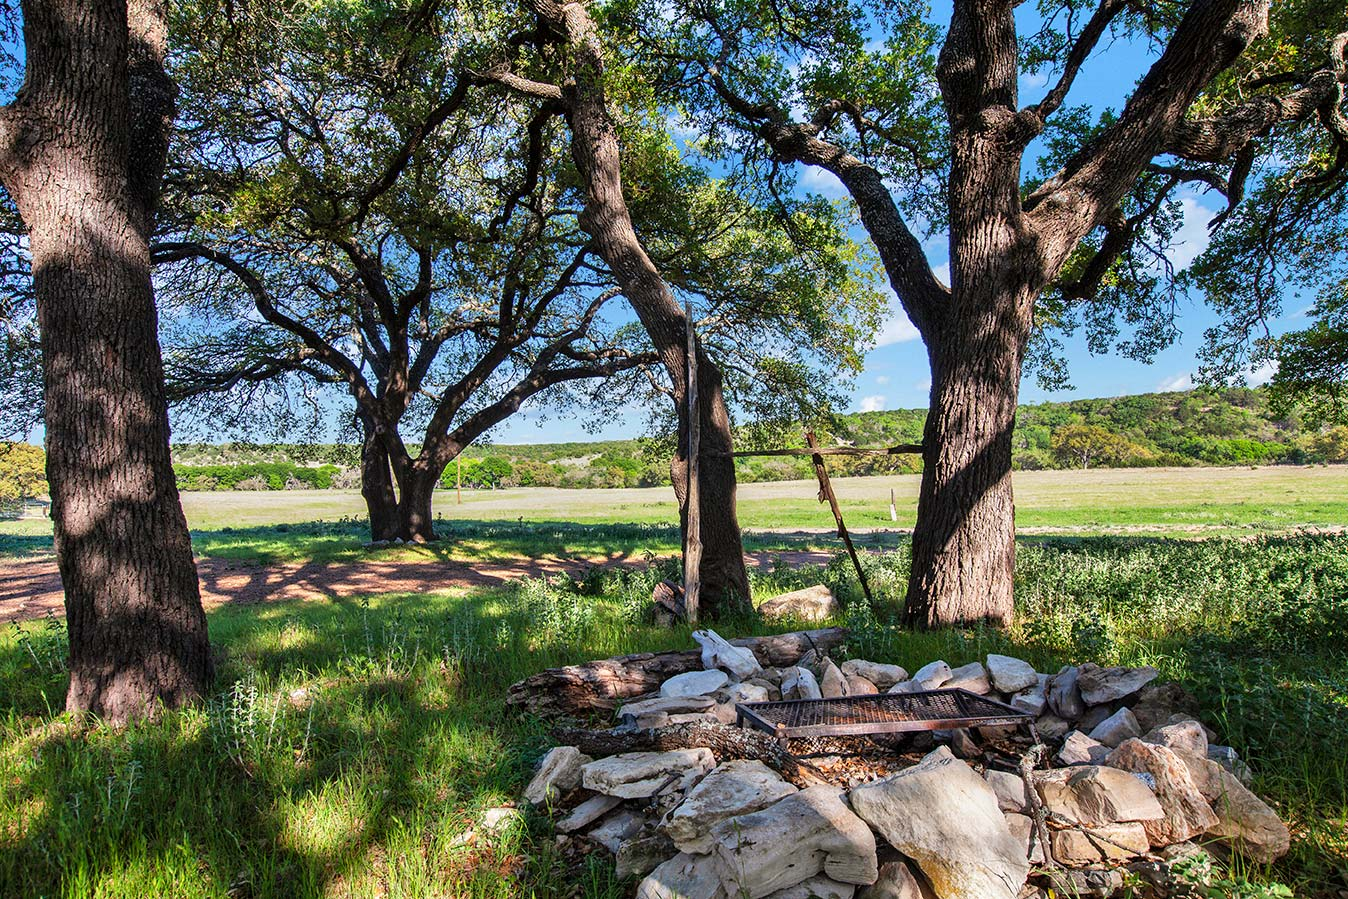 fredericksburg-realty-squaw-creek-ranch-real-estate-land-for-sale-home-house-historic-9.jpg